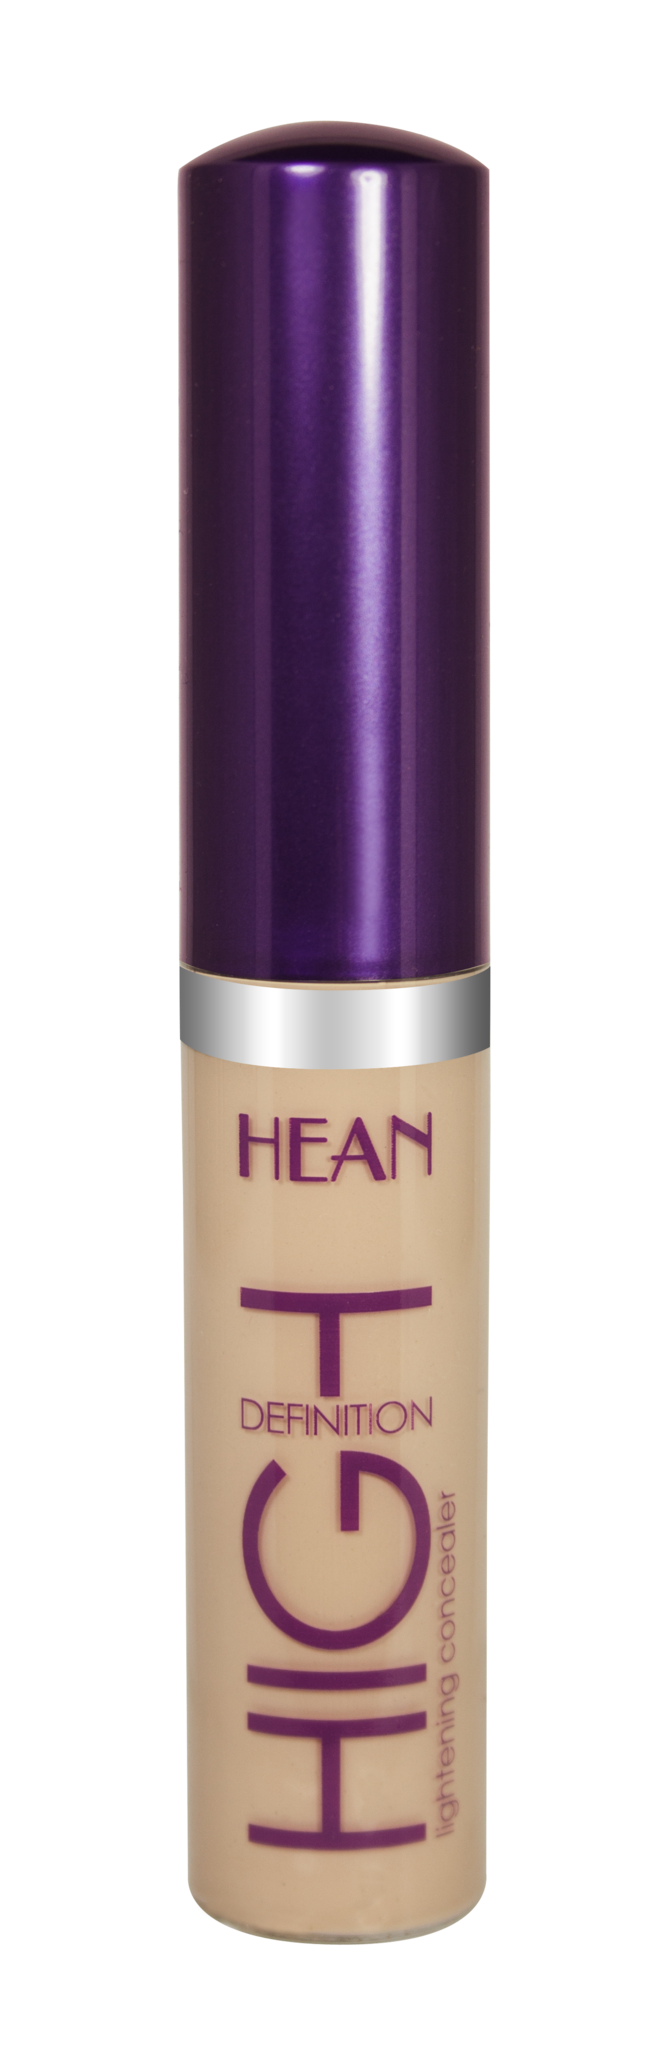 Hean High Definition Lightening Concealer For Eyes & Skin 9 ml